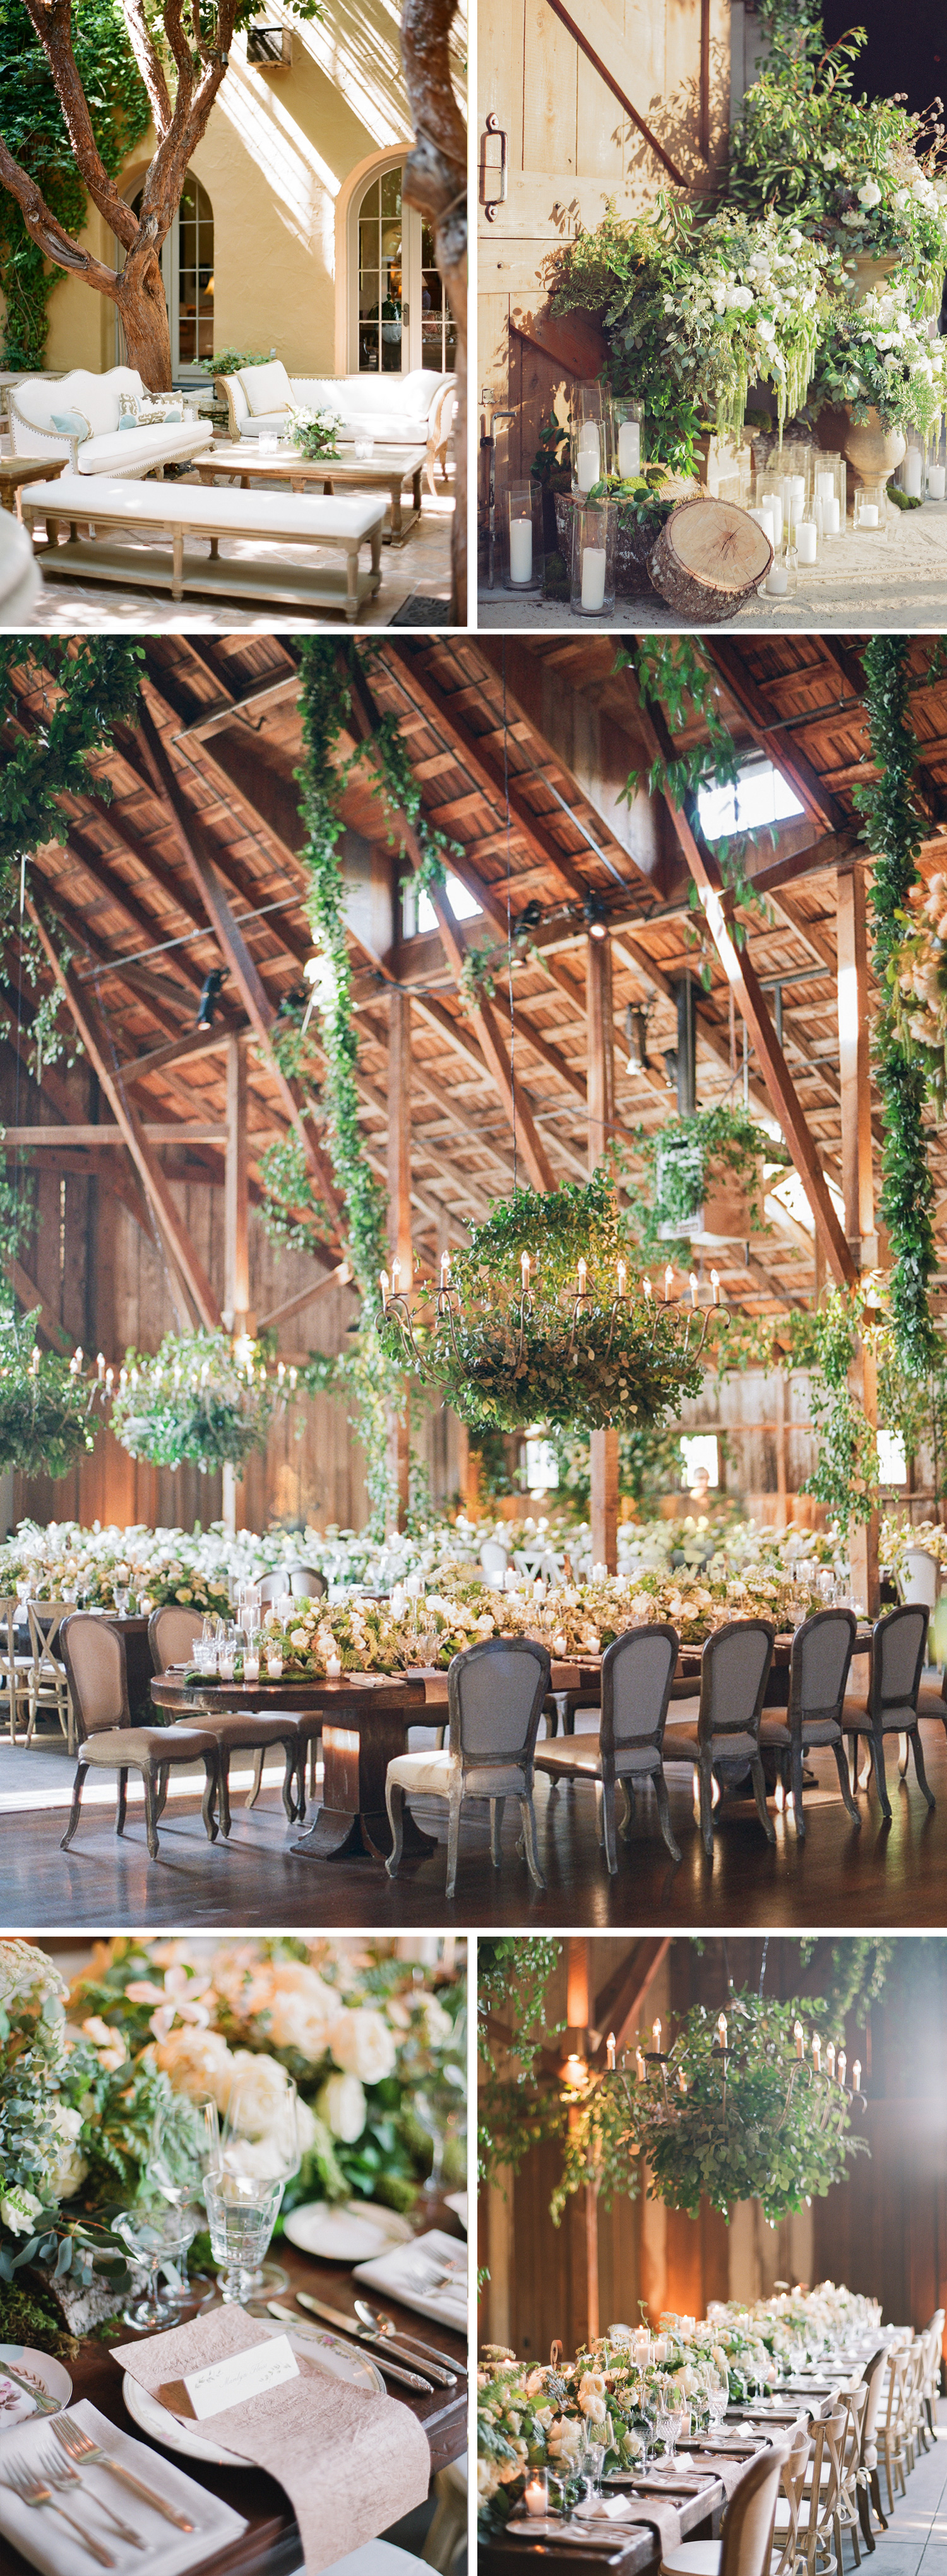 Shots of the indoor barn reception - thick vines and dense, white rose-studded foliage line the tables and chandeliers; photos by Sylvie Gil